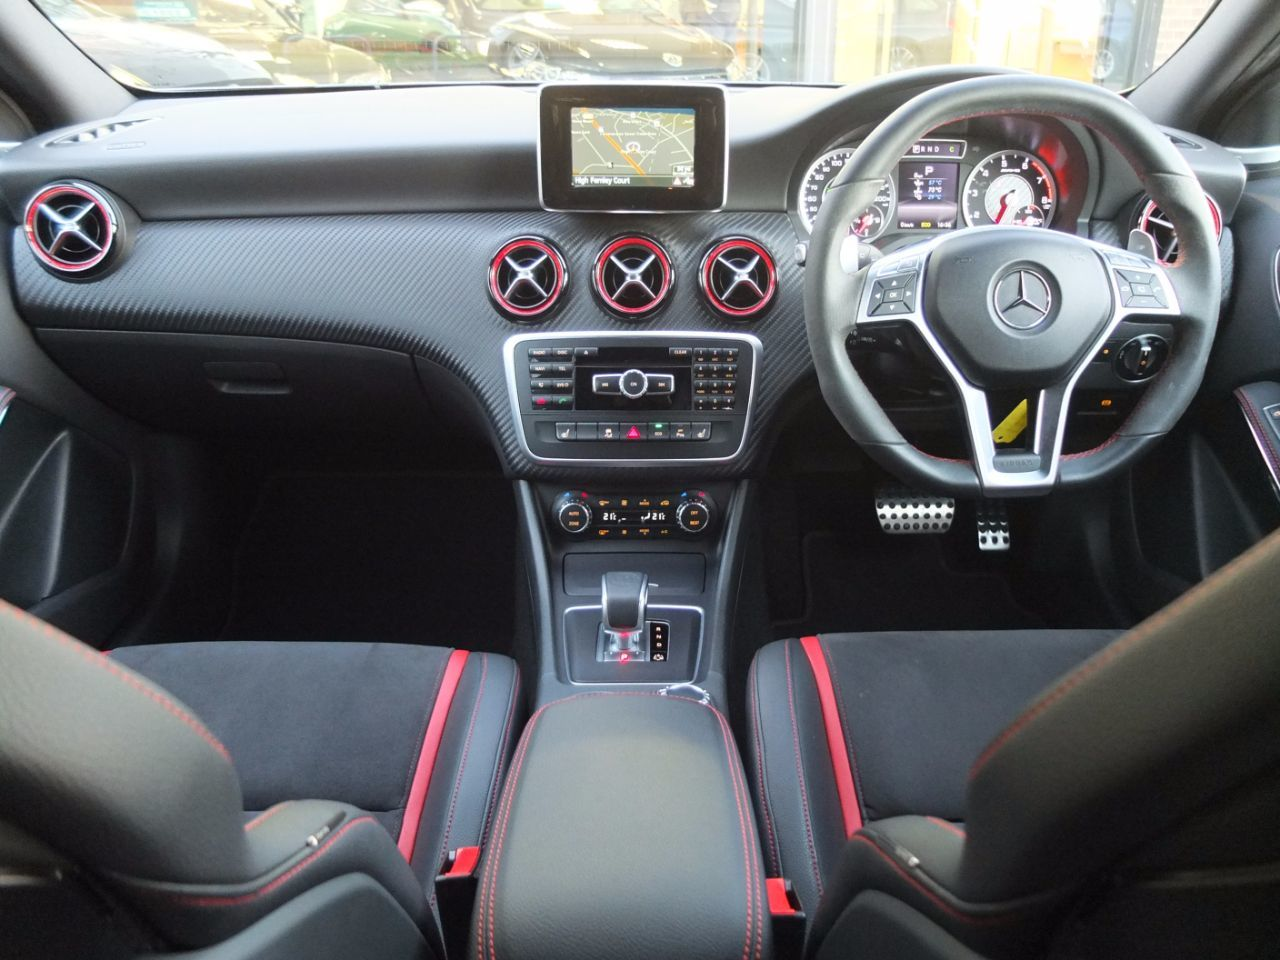 Mercedes-Benz A Class 2.0 A45 AMG 4-MATIC 7G-DCT Hatchback Petrol Mountain Grey Metallic